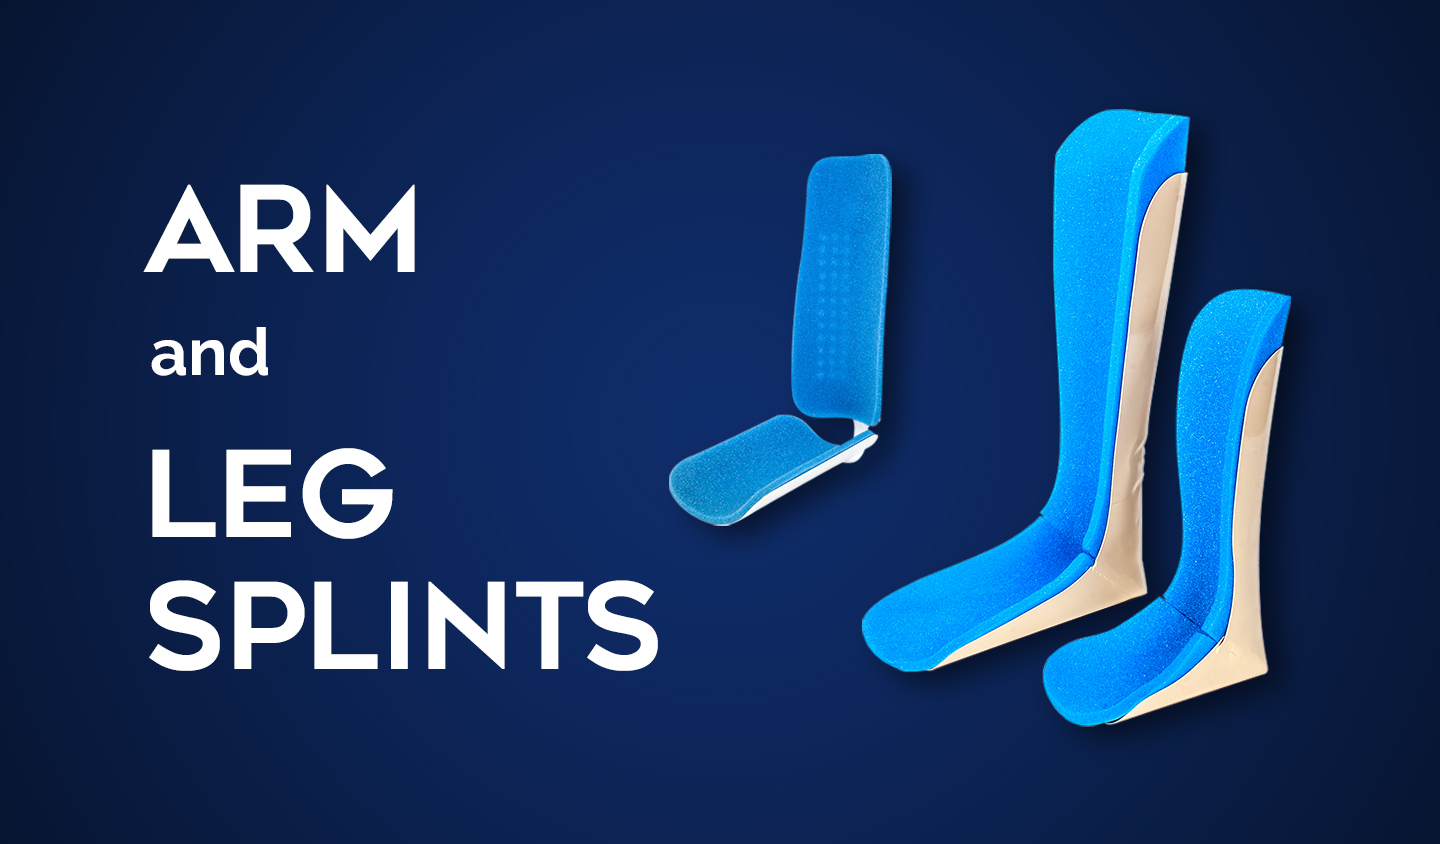 arm and leg splints